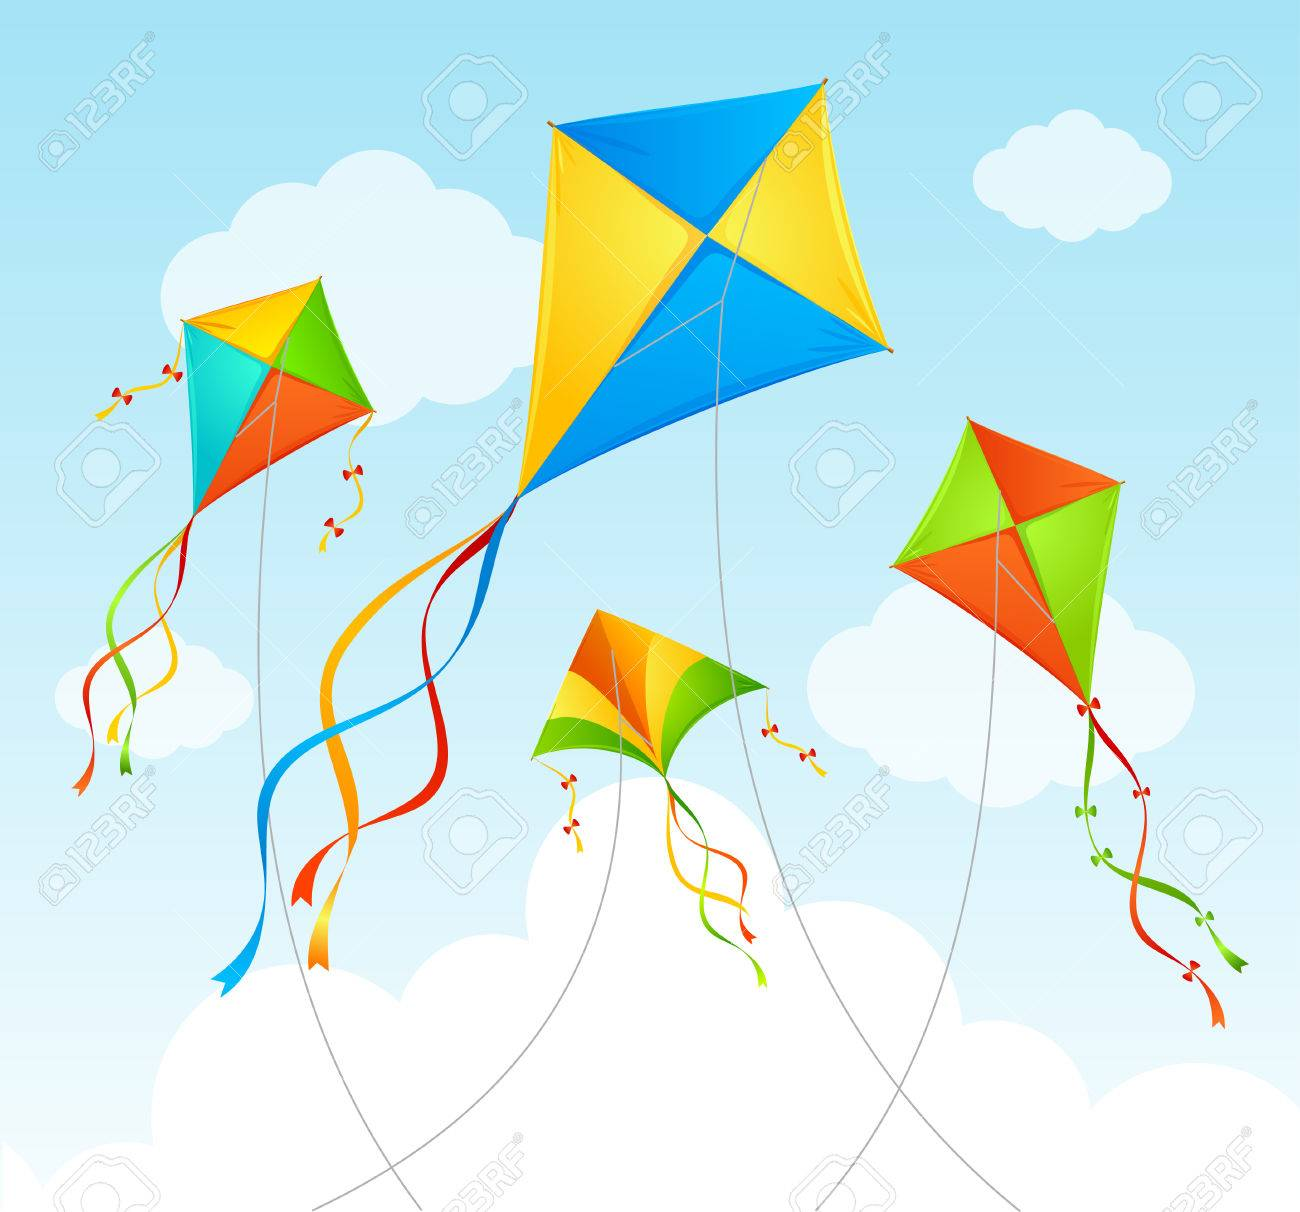 Fly Kite and Clouds on a Blue Sky. Summer Background. Vector illustration - 54183420